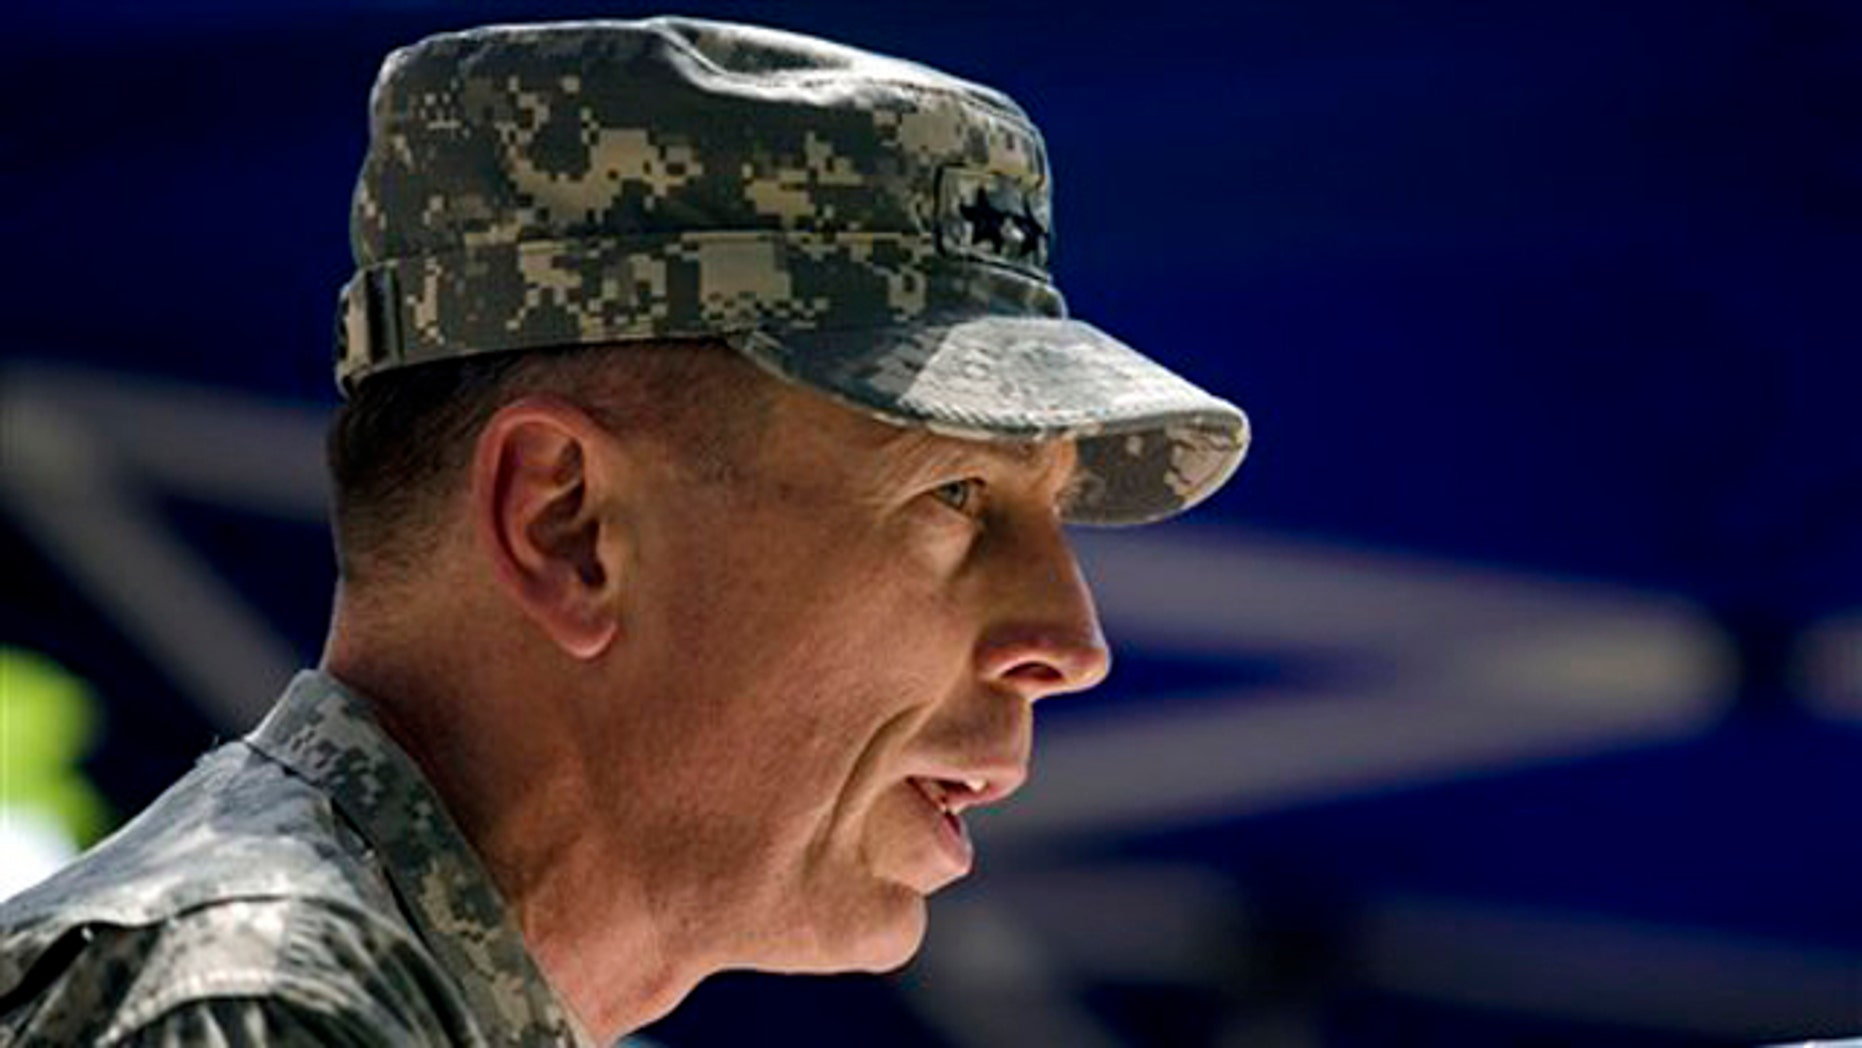 Gen. David Petraeus, the new commander of U.S. and NATO forces in Afghanistan, speaks during a ceremony July 4 in Kabul. (AP Photo)